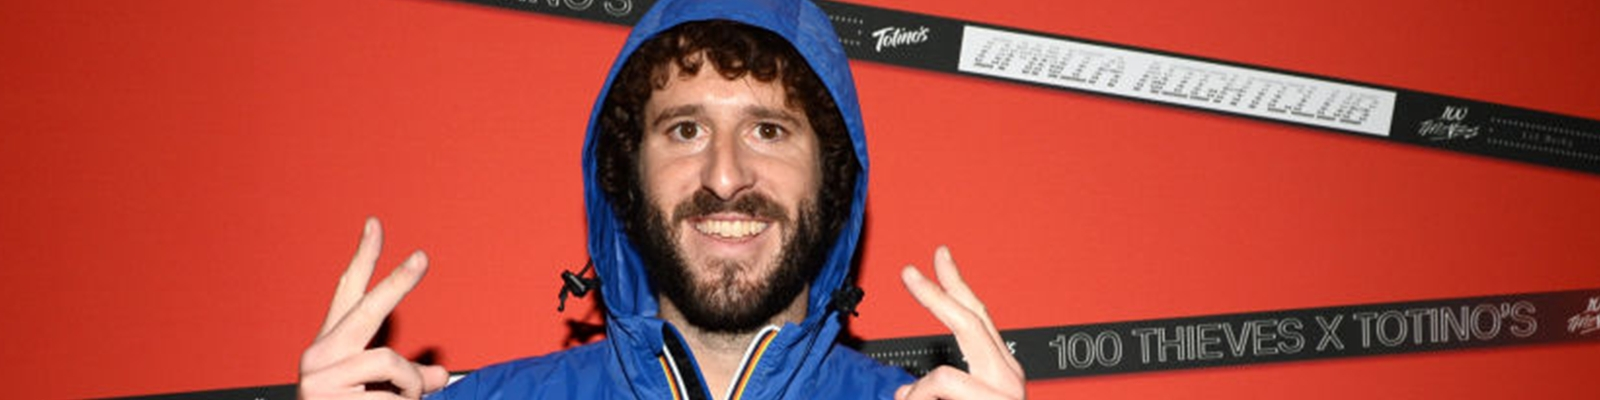 Examining How Lil Dicky Went From Making Funny Songs On YouTube To A Rapper With His Own TV Show Who Can't Be Ignored